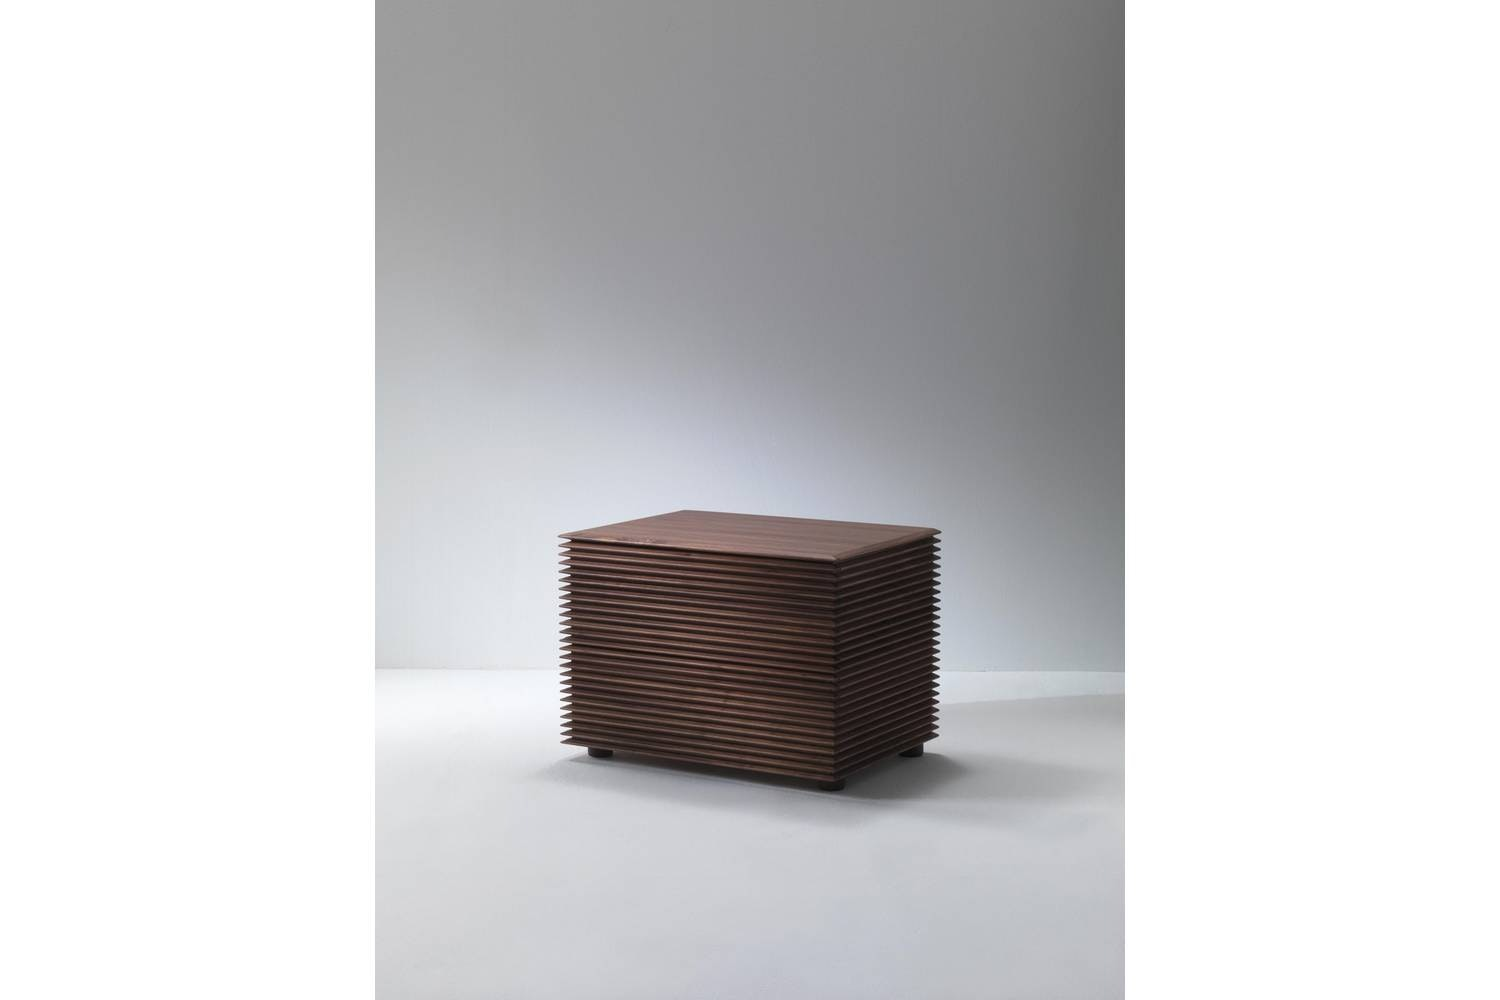 Riga Bedside Table by T. Colzani for Porada